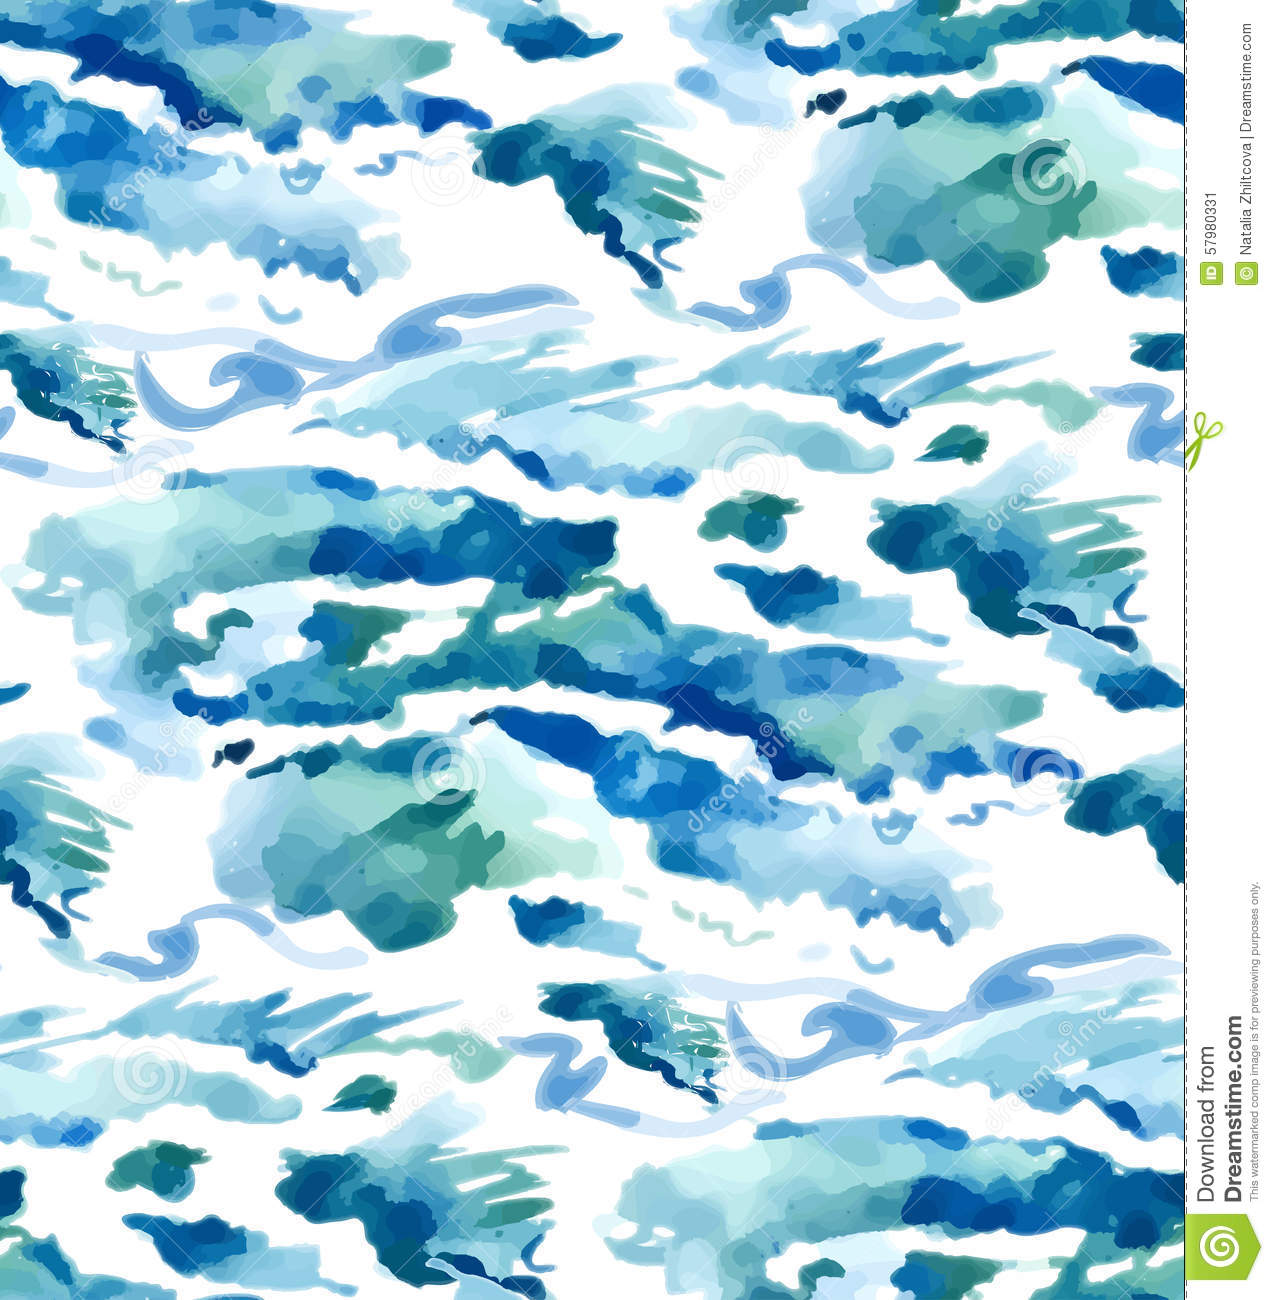 watercolor seamless waves background stock illustration